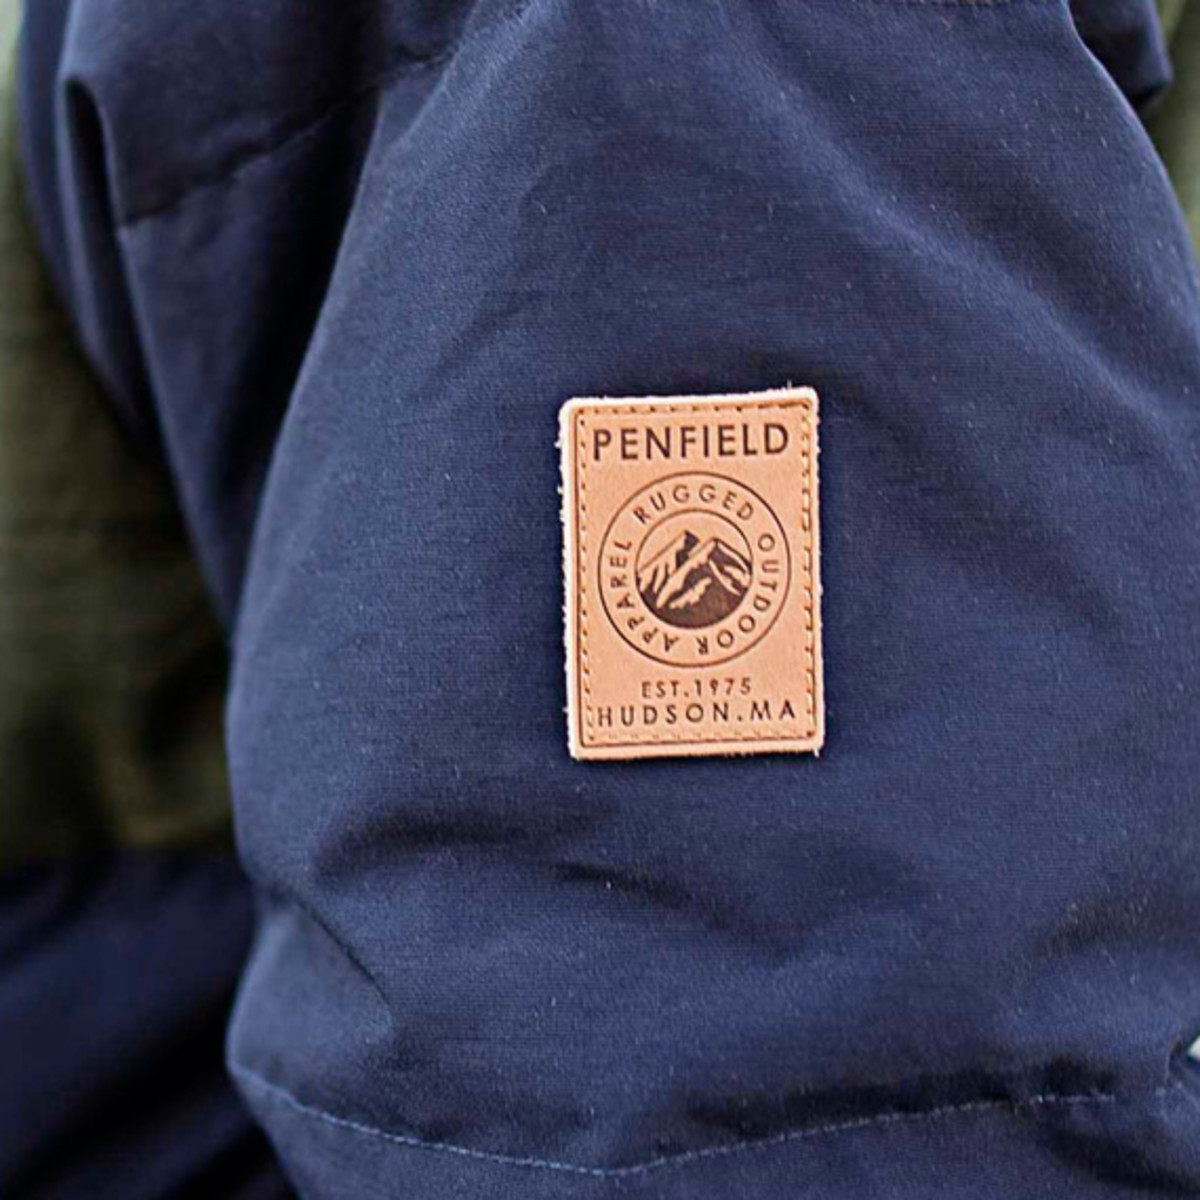 staple-penfield-rockwool-jacket-05